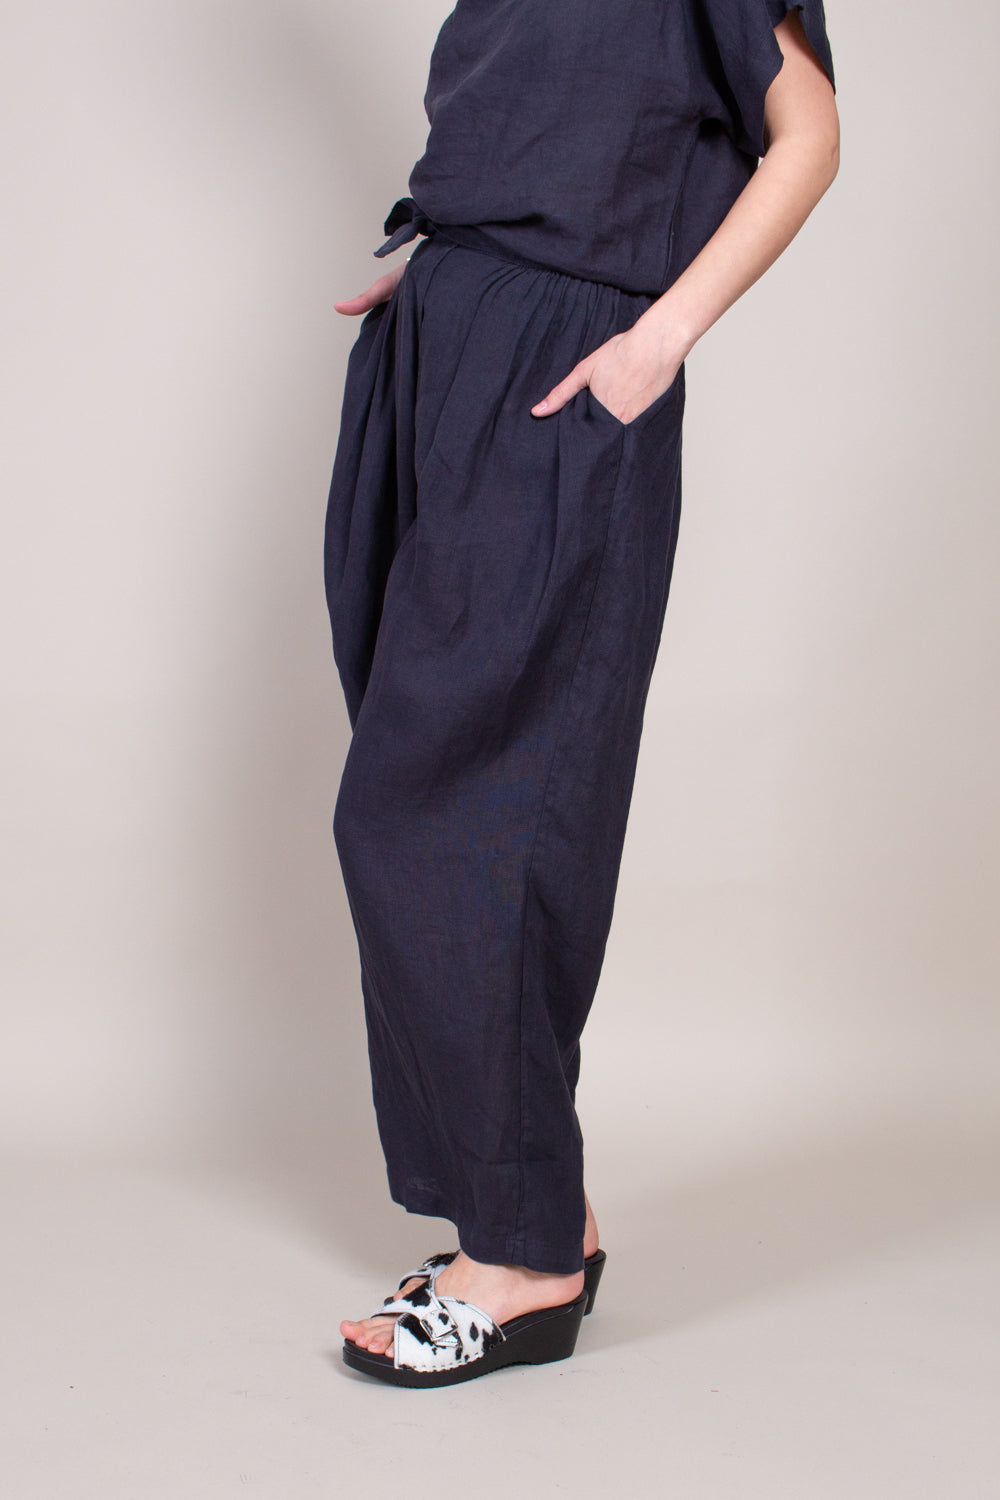 Black Crane Sack Pants in Black - Vert & Vogue